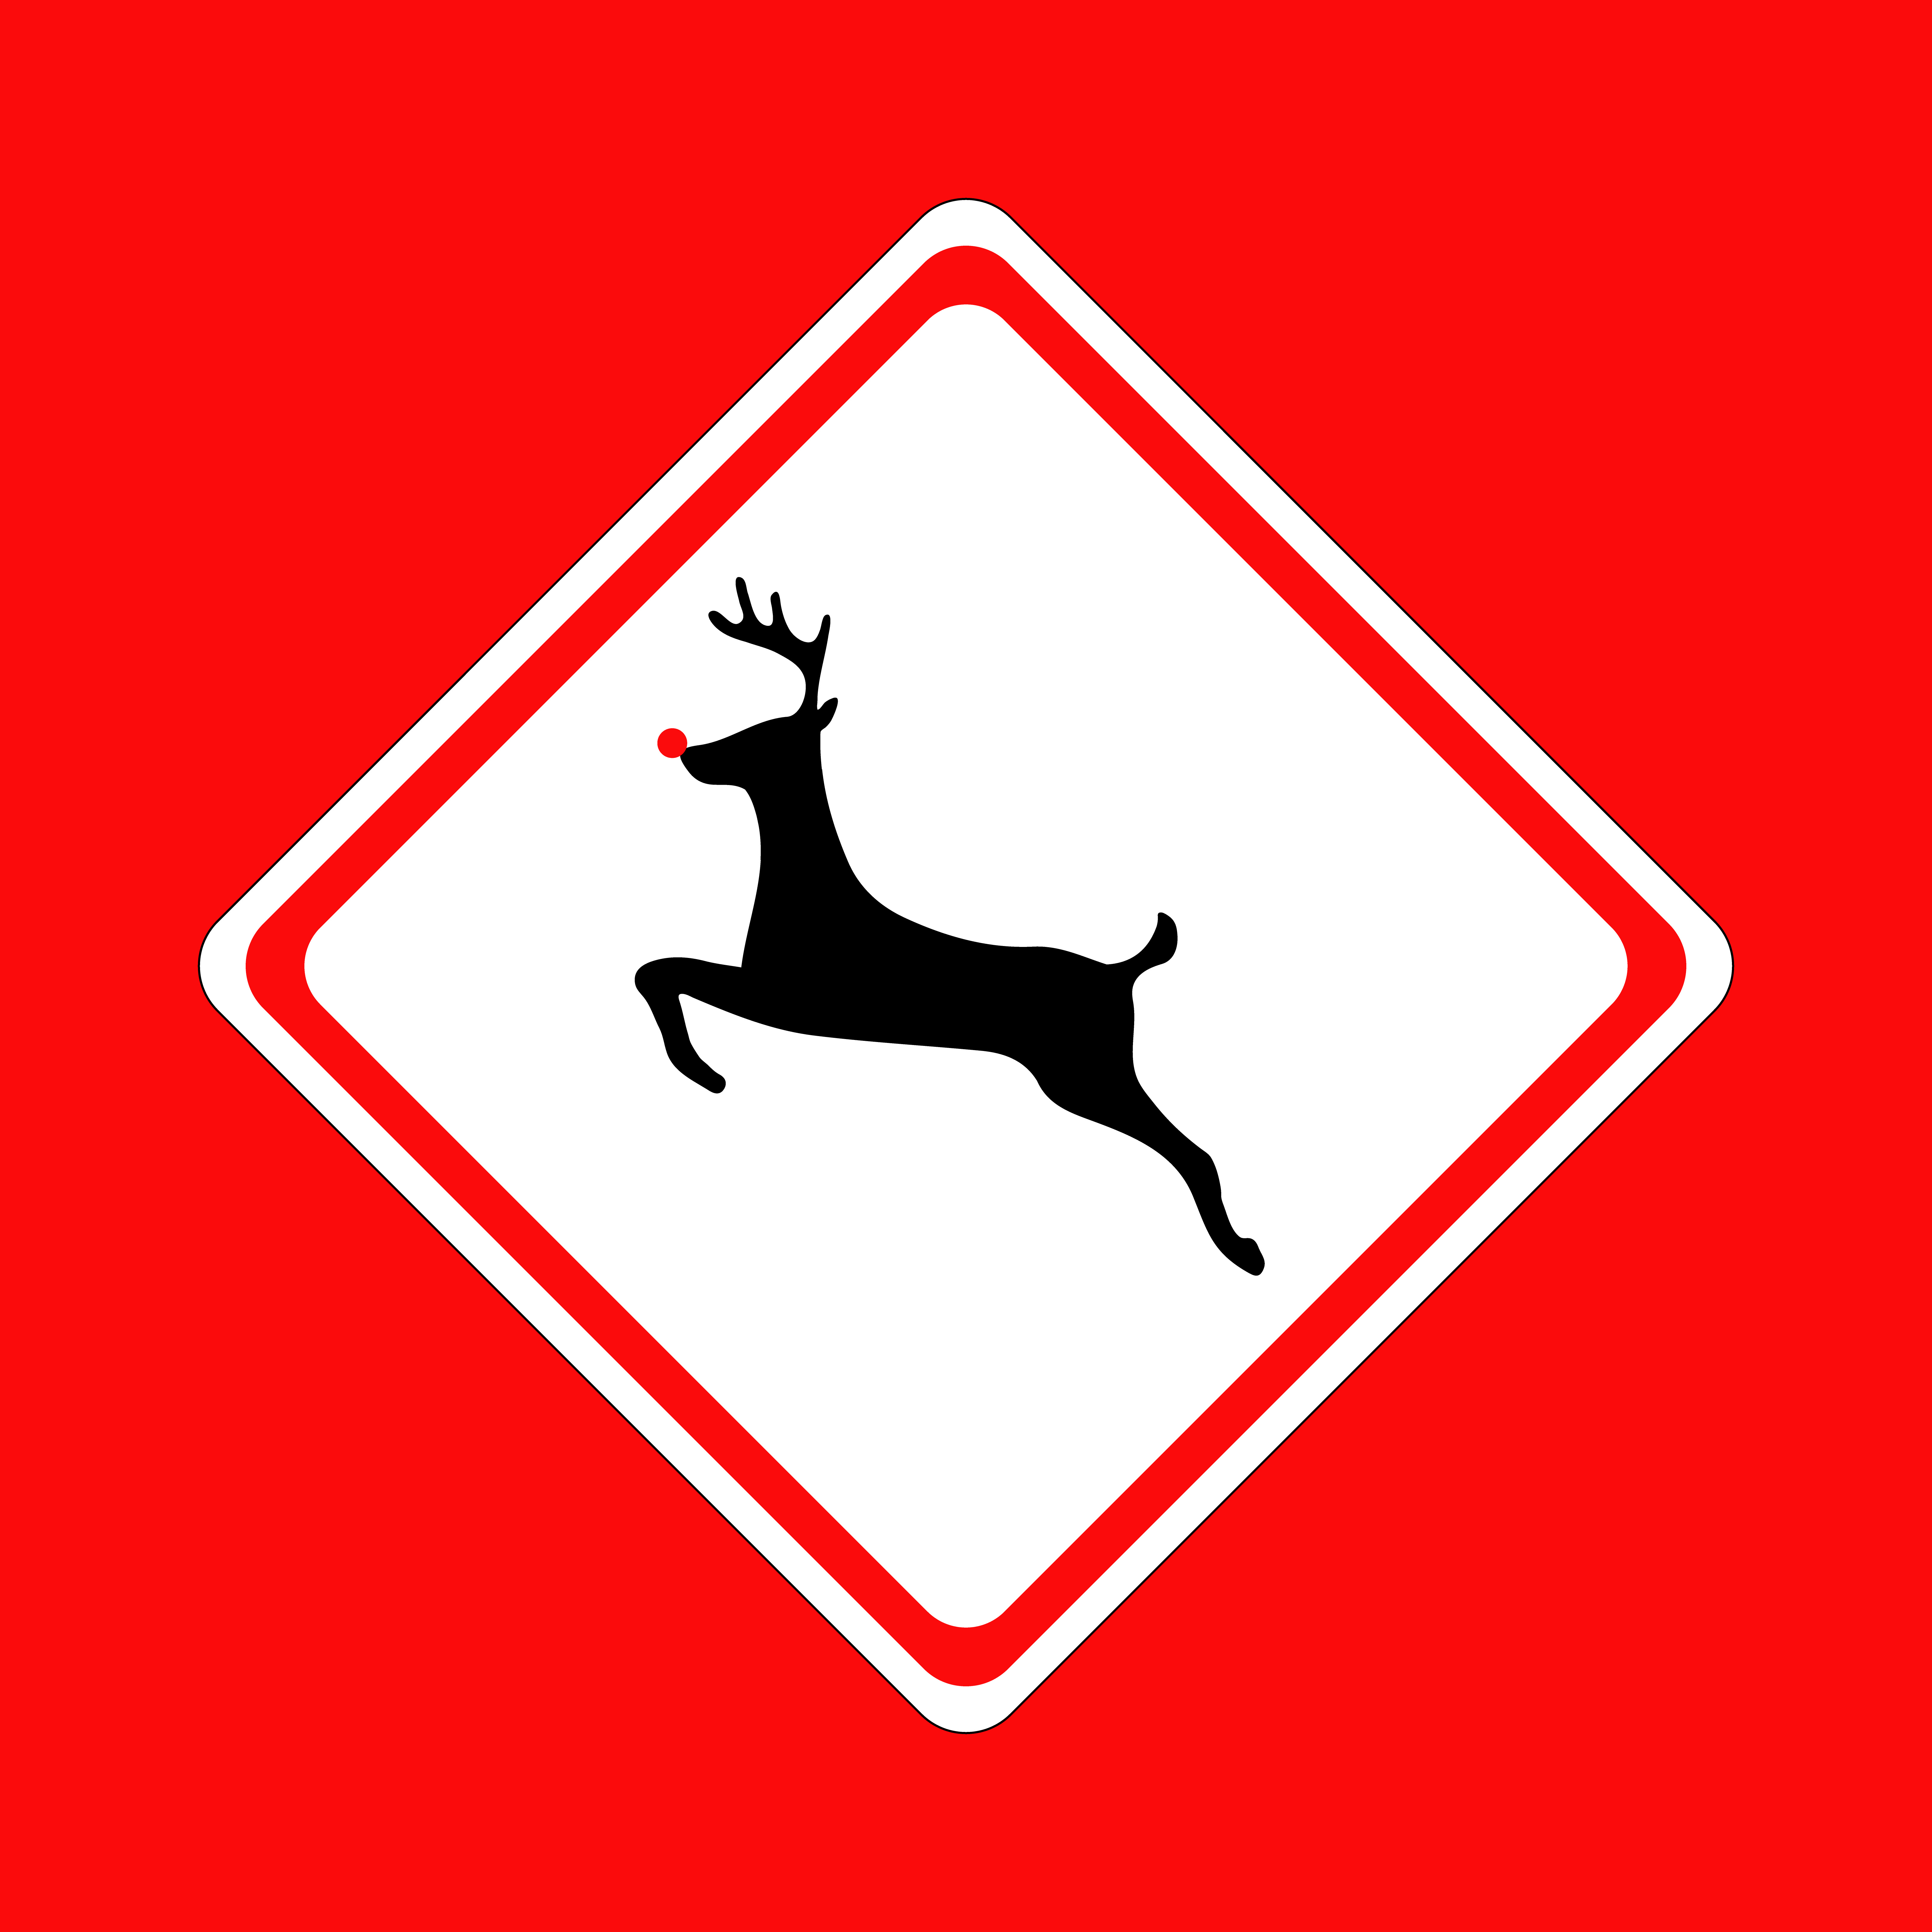 Christmas Reindeer Street Sign Illustration